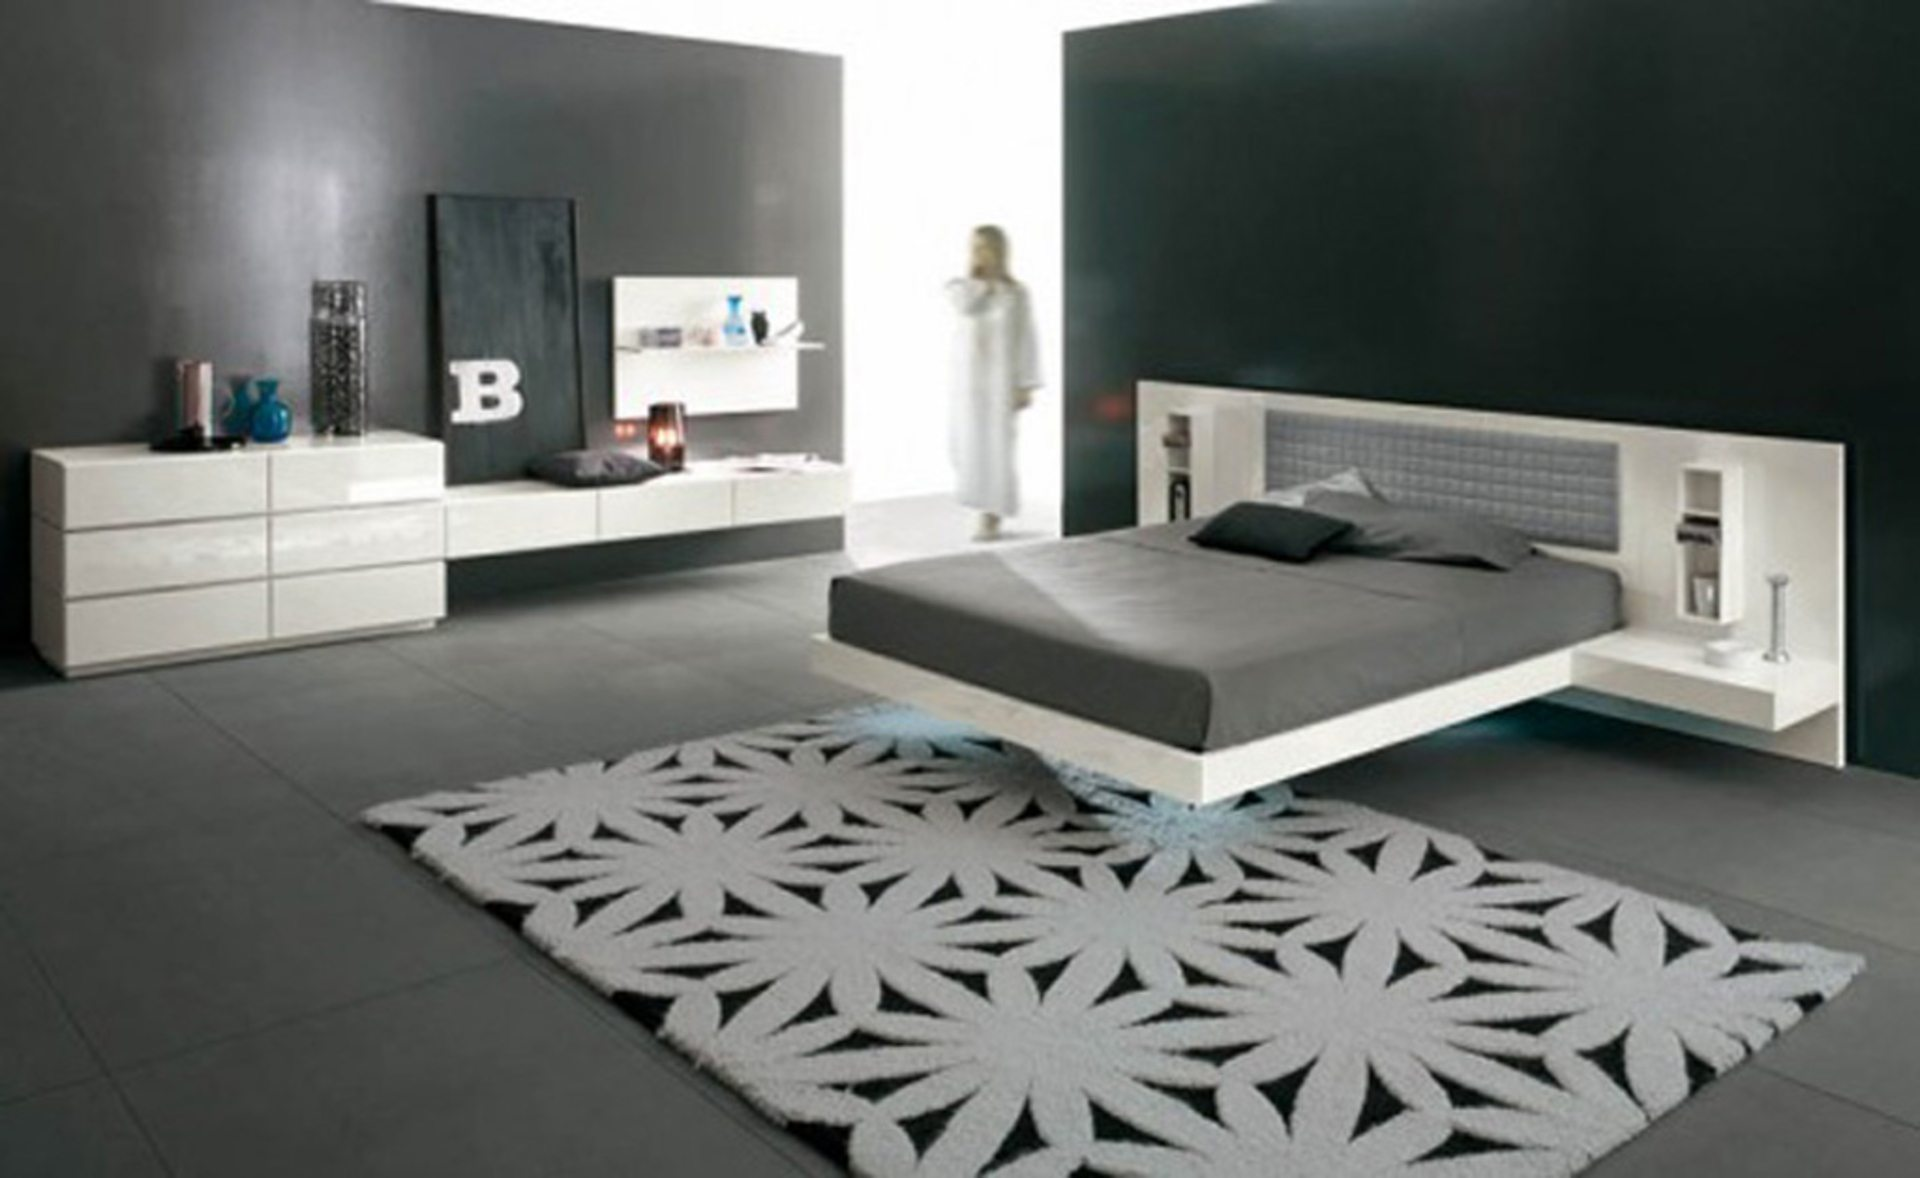 Interior design styles amit murao for New modern bed design